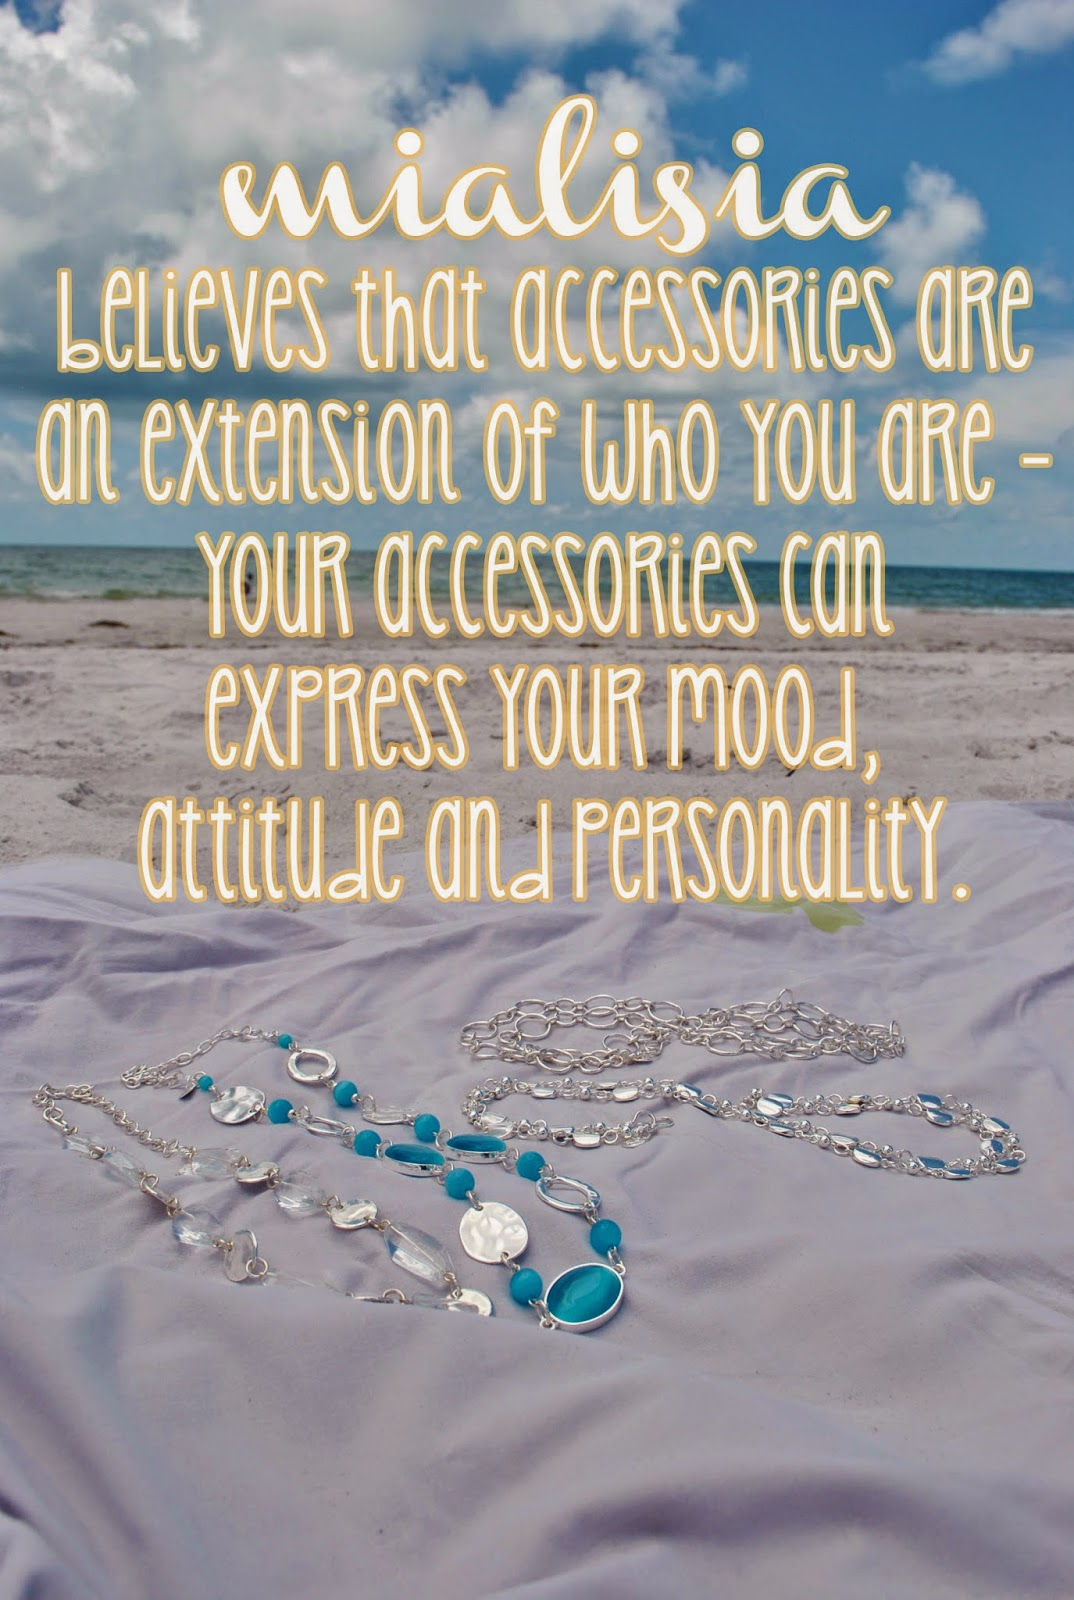 Mialisia believes that accessories are an extension of who you are.